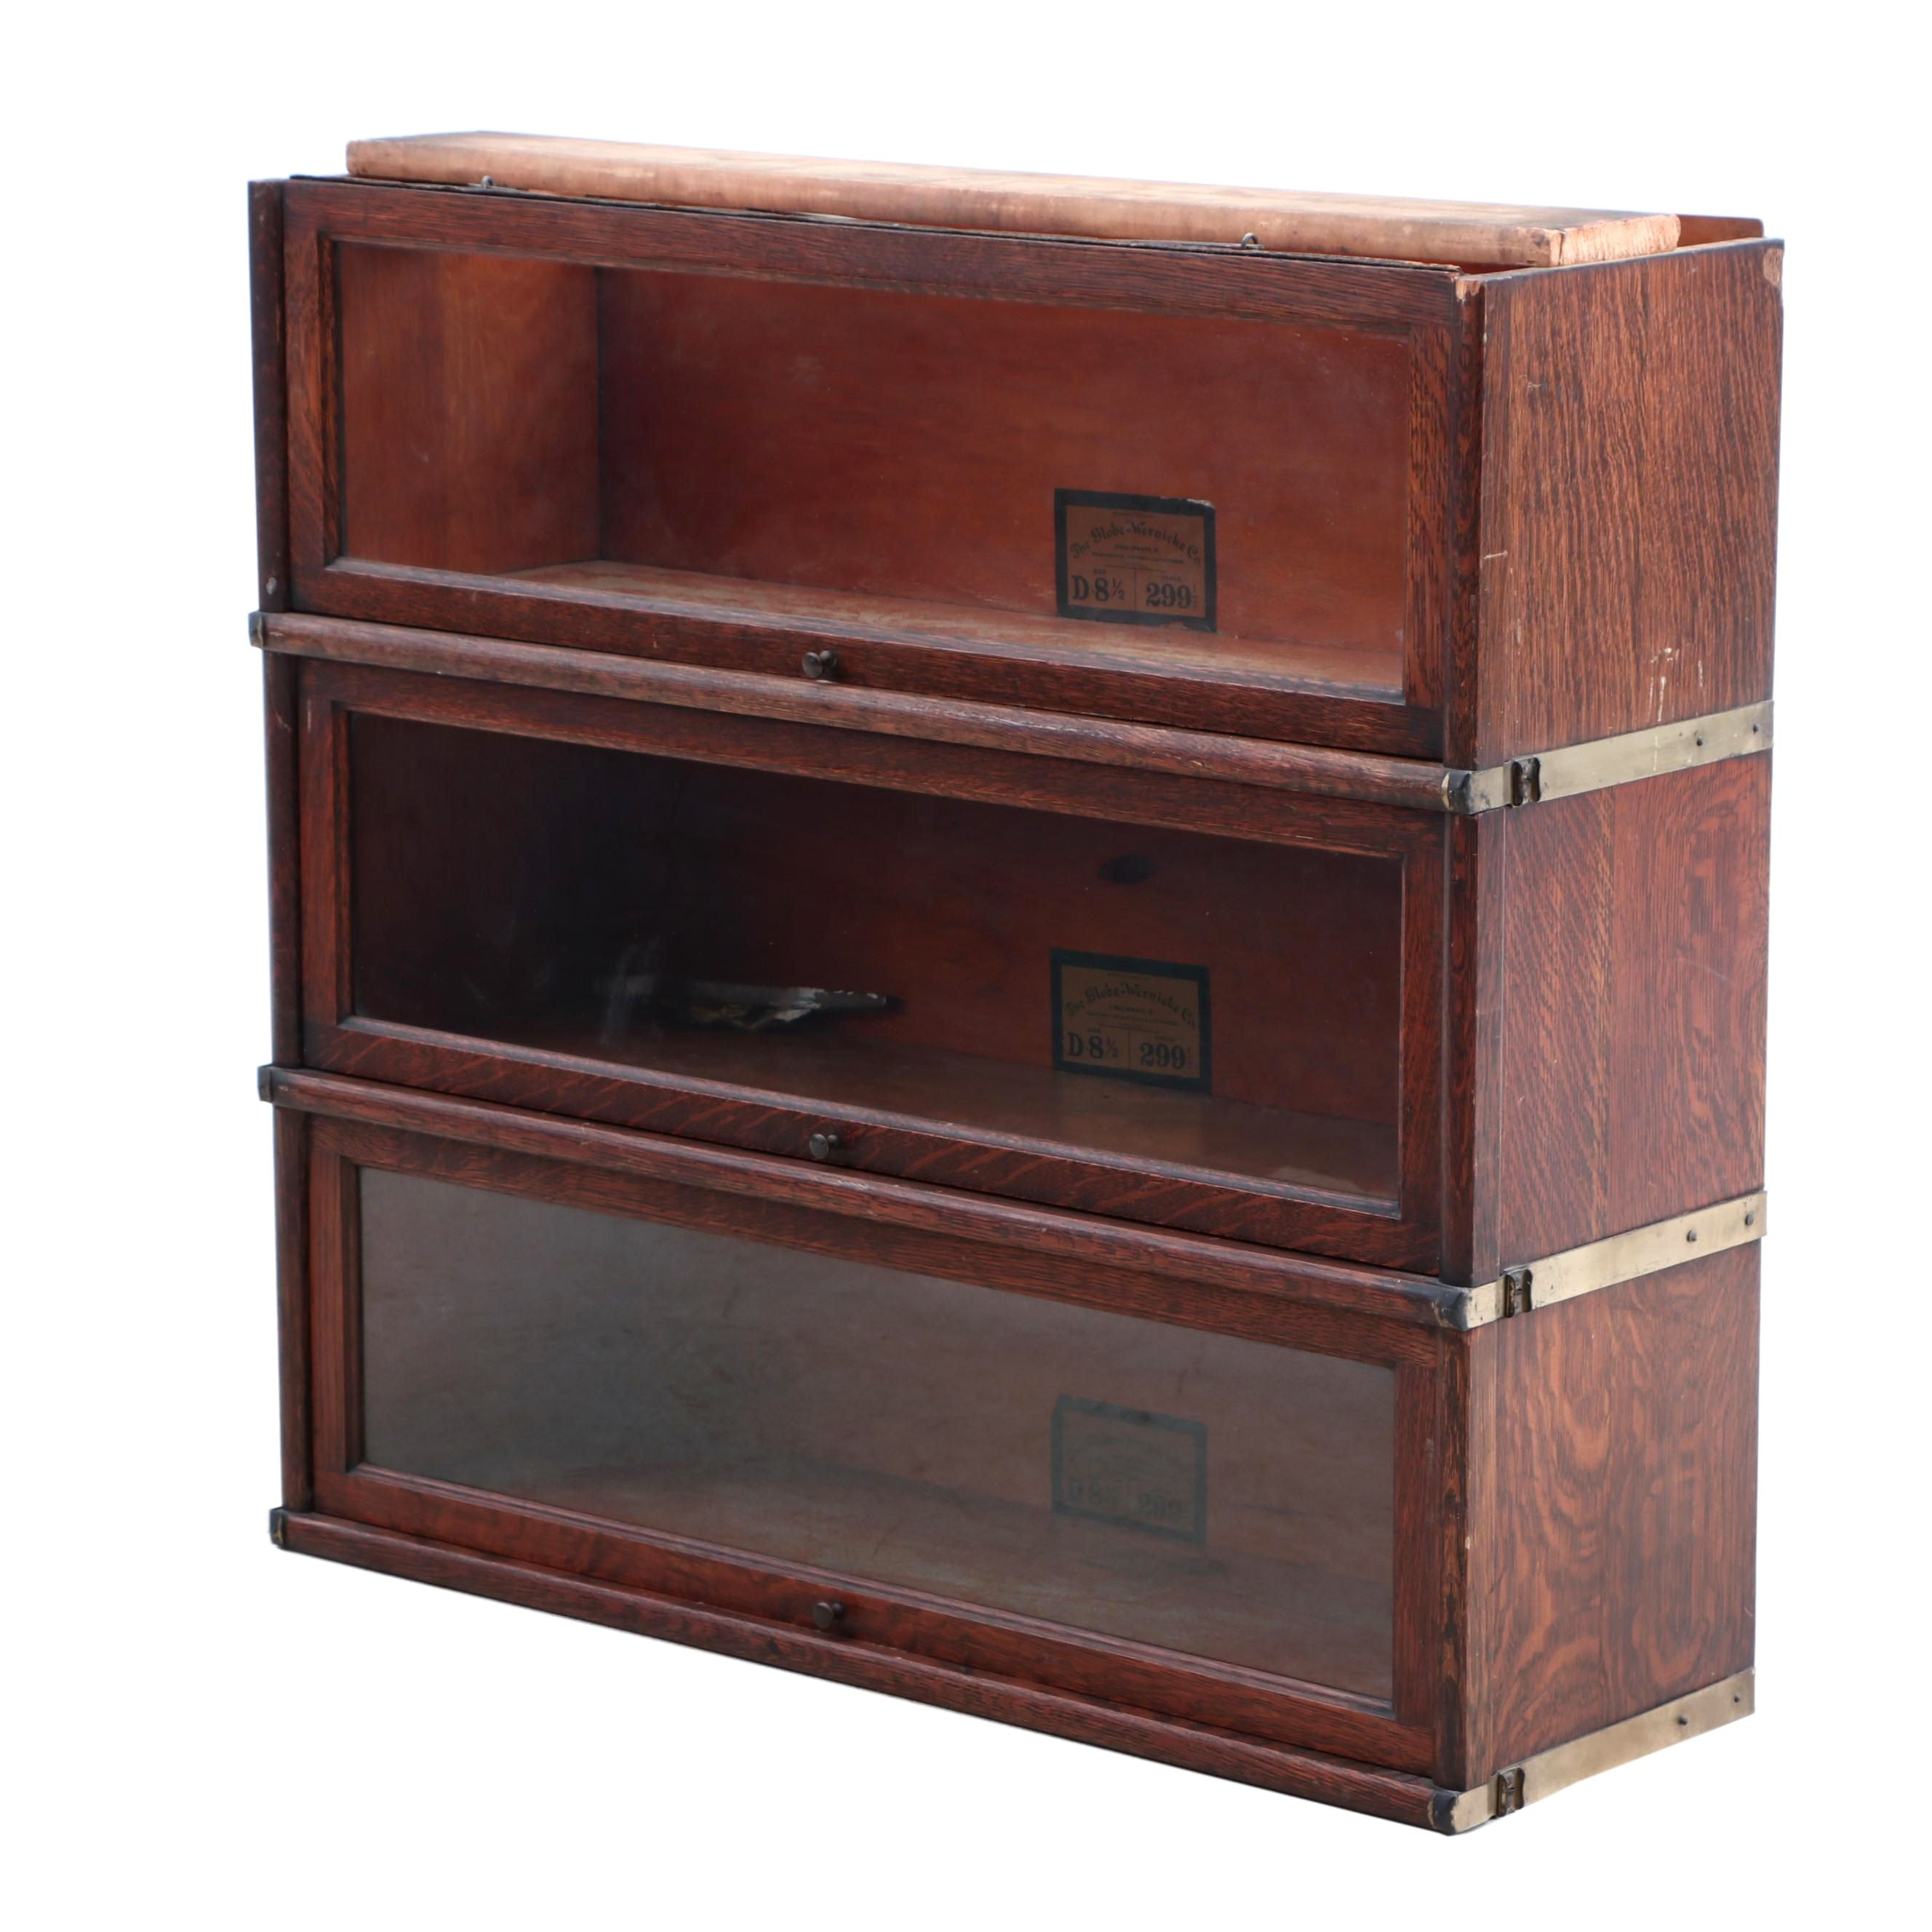 1920s Sectional Barrister Bookcase by Globe Wernicke